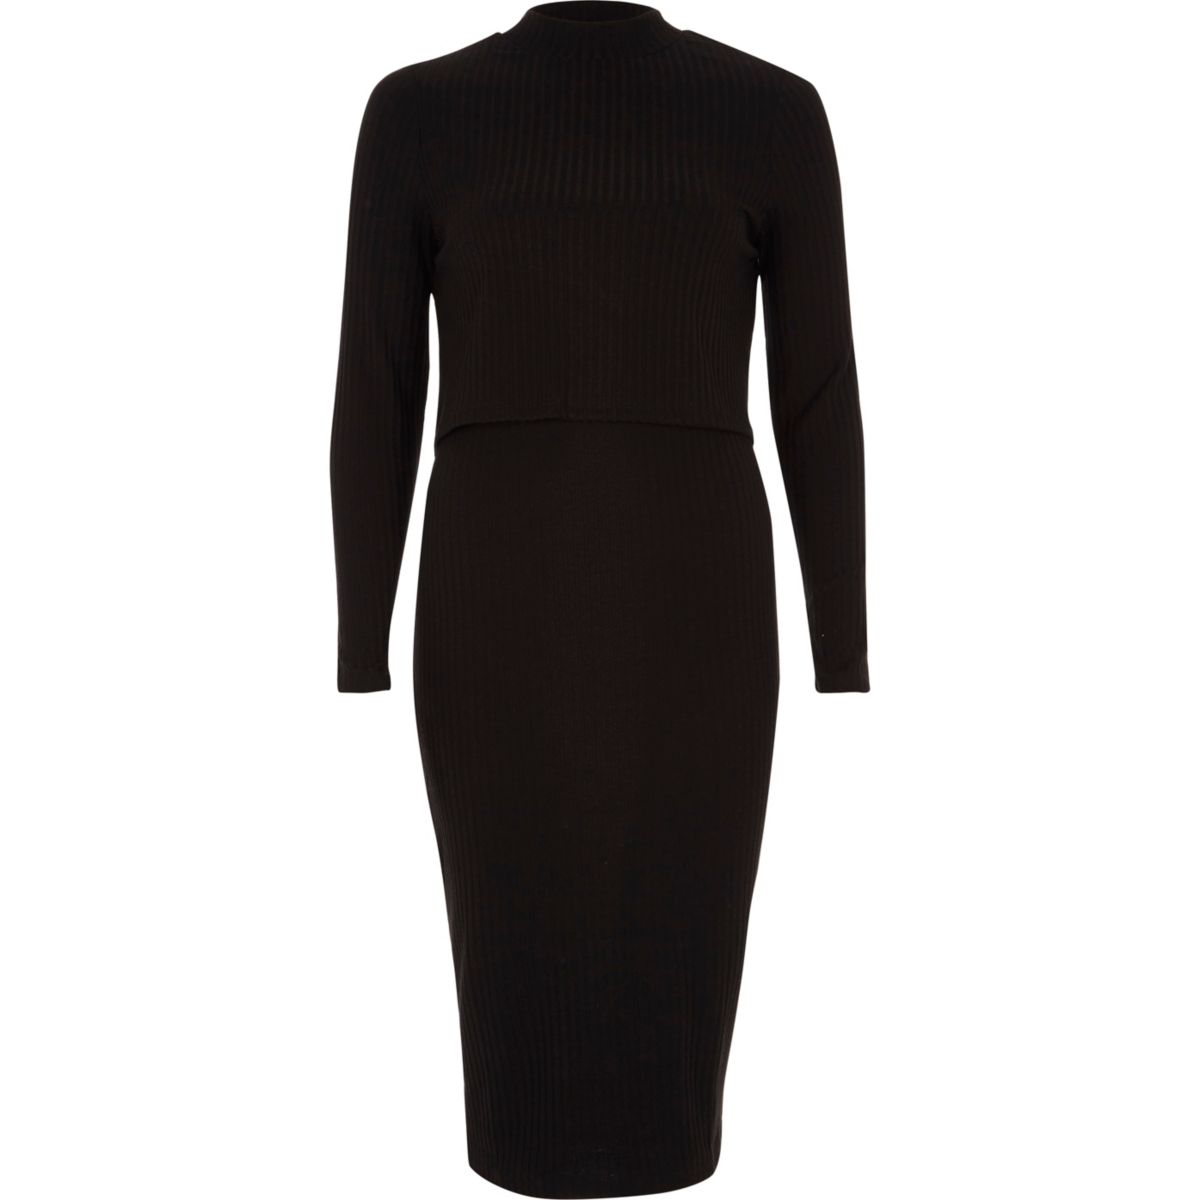 Doppellagiges Bodycon-Midikleid